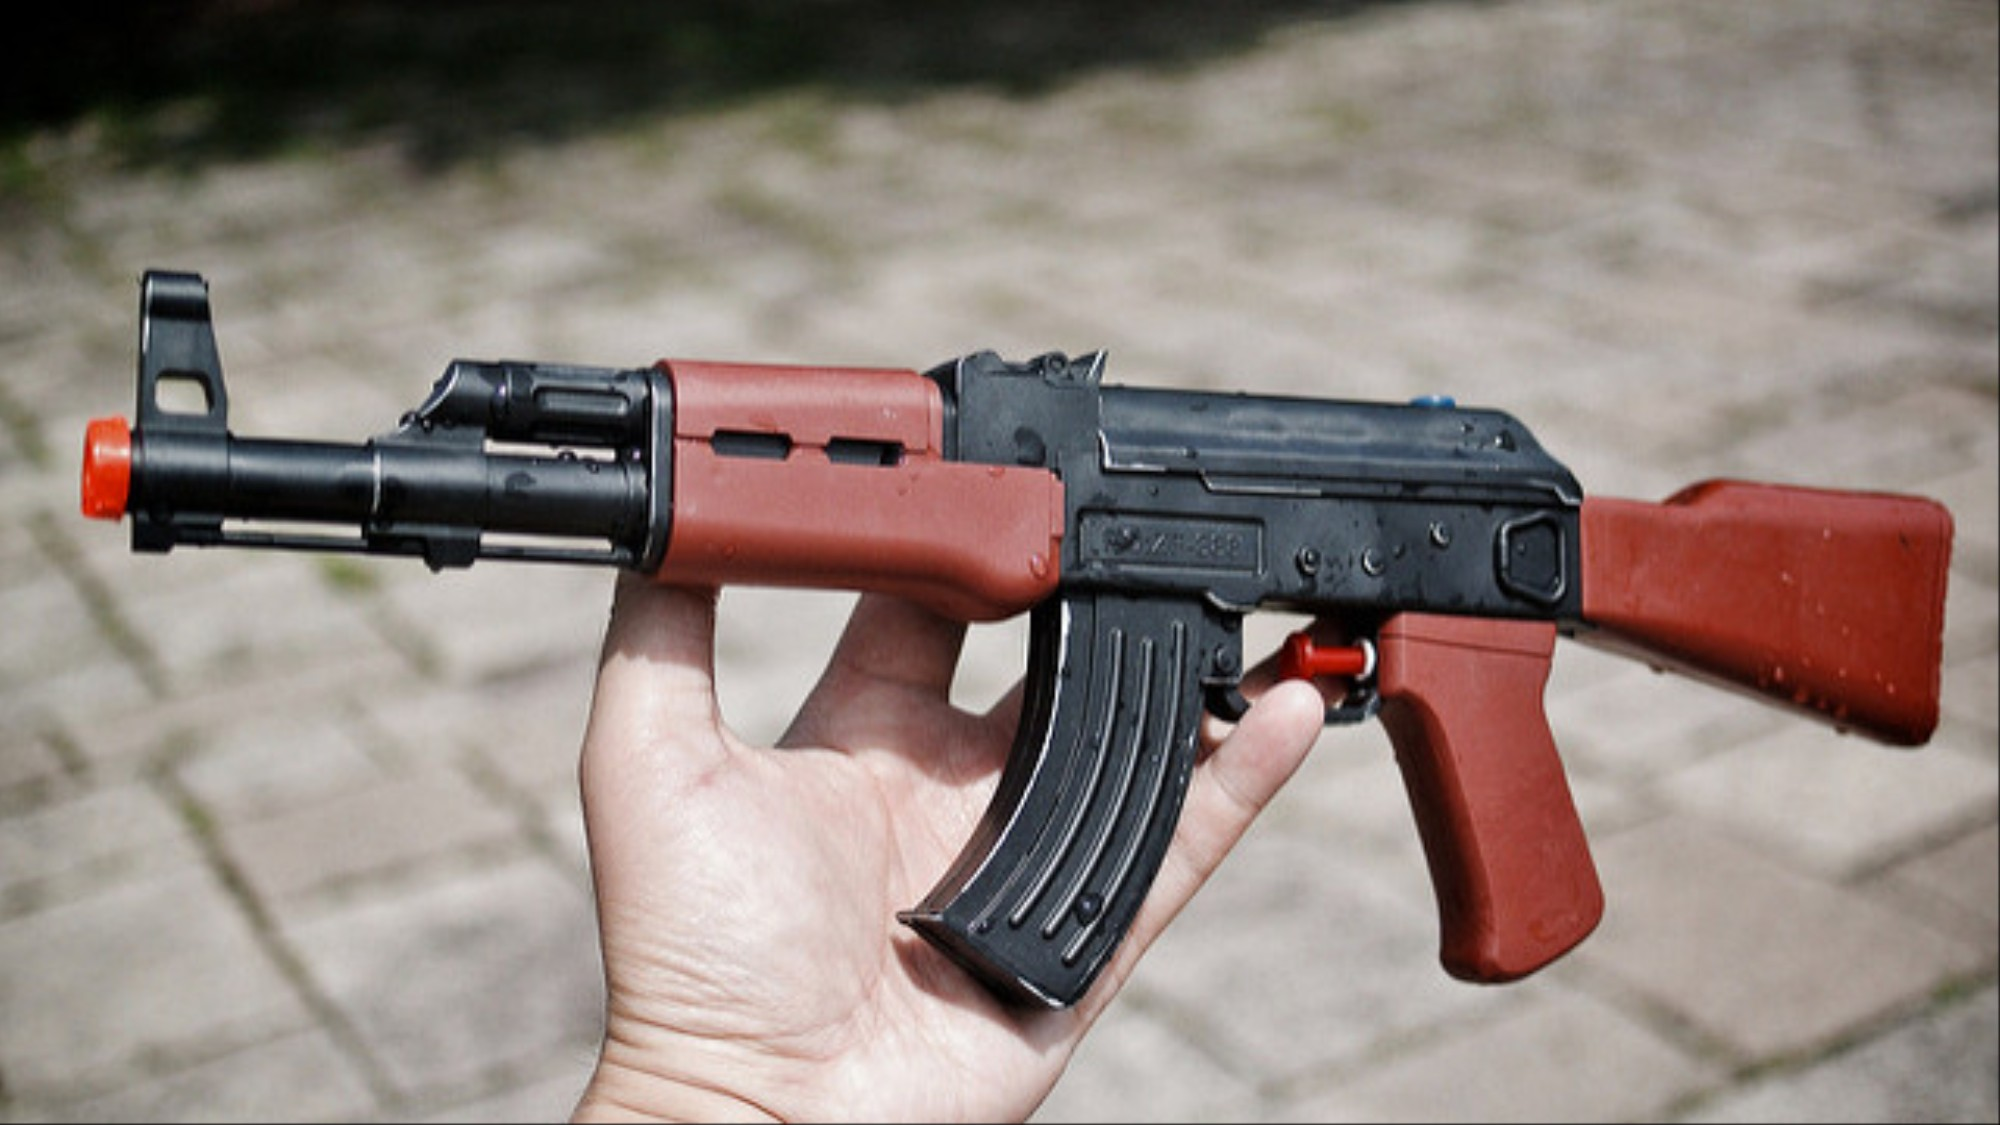 TV Journalists Try Buying AK-47 on Dark Web, Fail - VICE